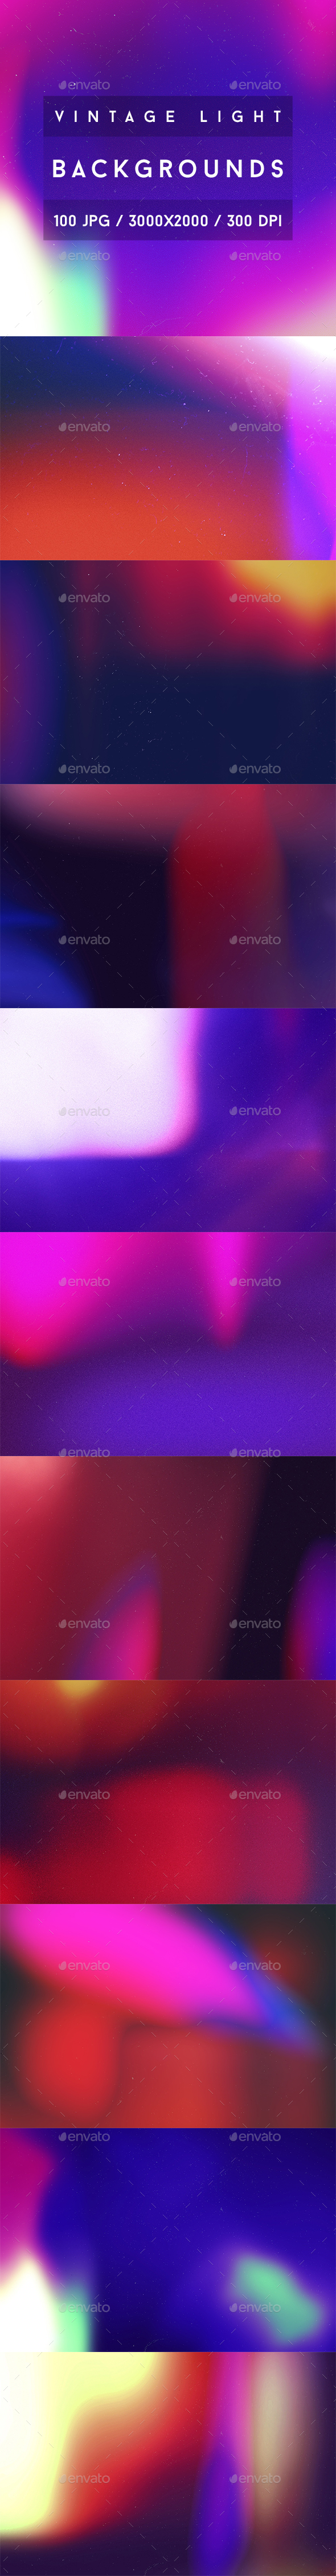 100 Vintage Light Backgrounds - Abstract Backgrounds